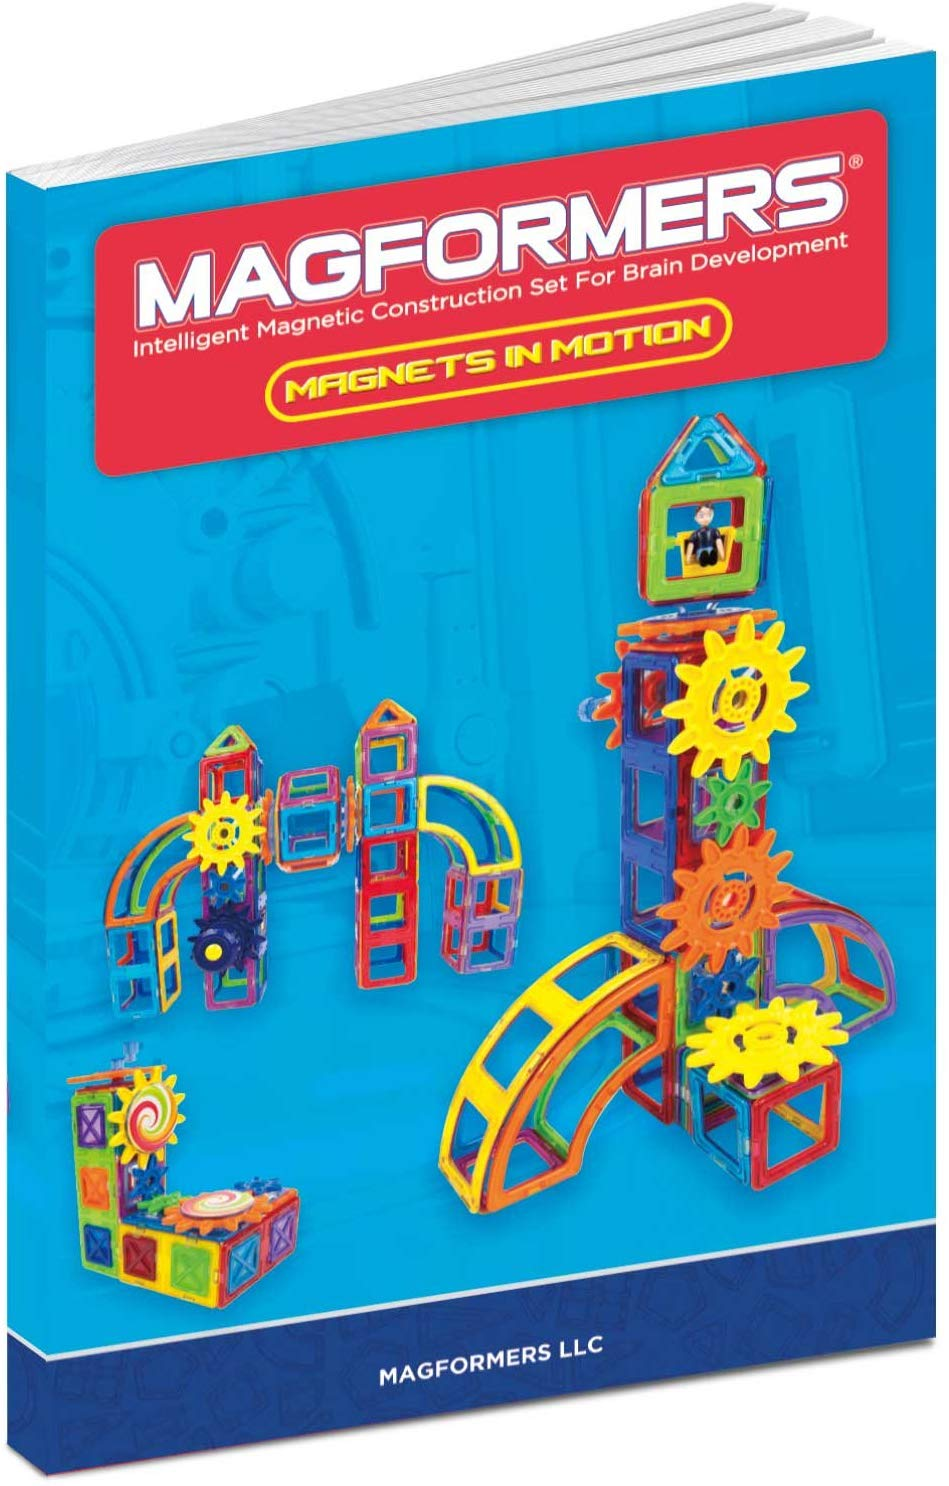 Magnets in Motion Accessory (20-pieces)